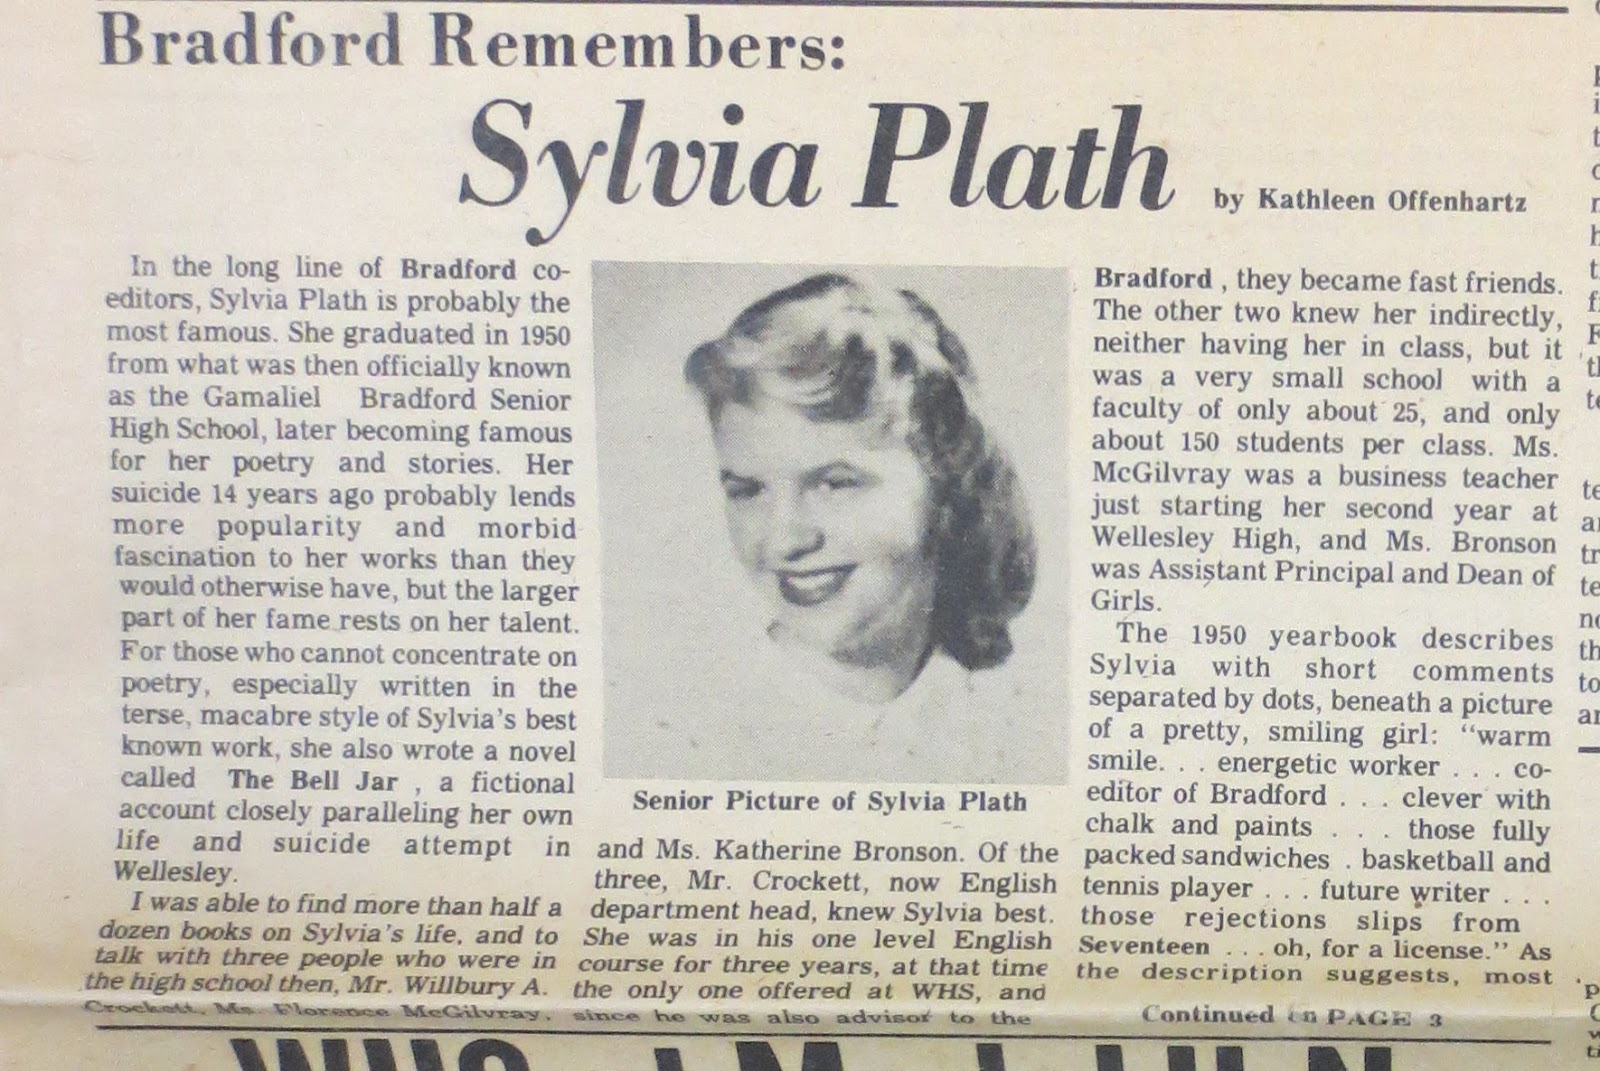 an analysis of metaphors a short autobiographical poem by sylvia plath Sylvia plath: poems study guide contains a the question about the poem's confessional, autobiographical content is summary and analysis metaphors the.